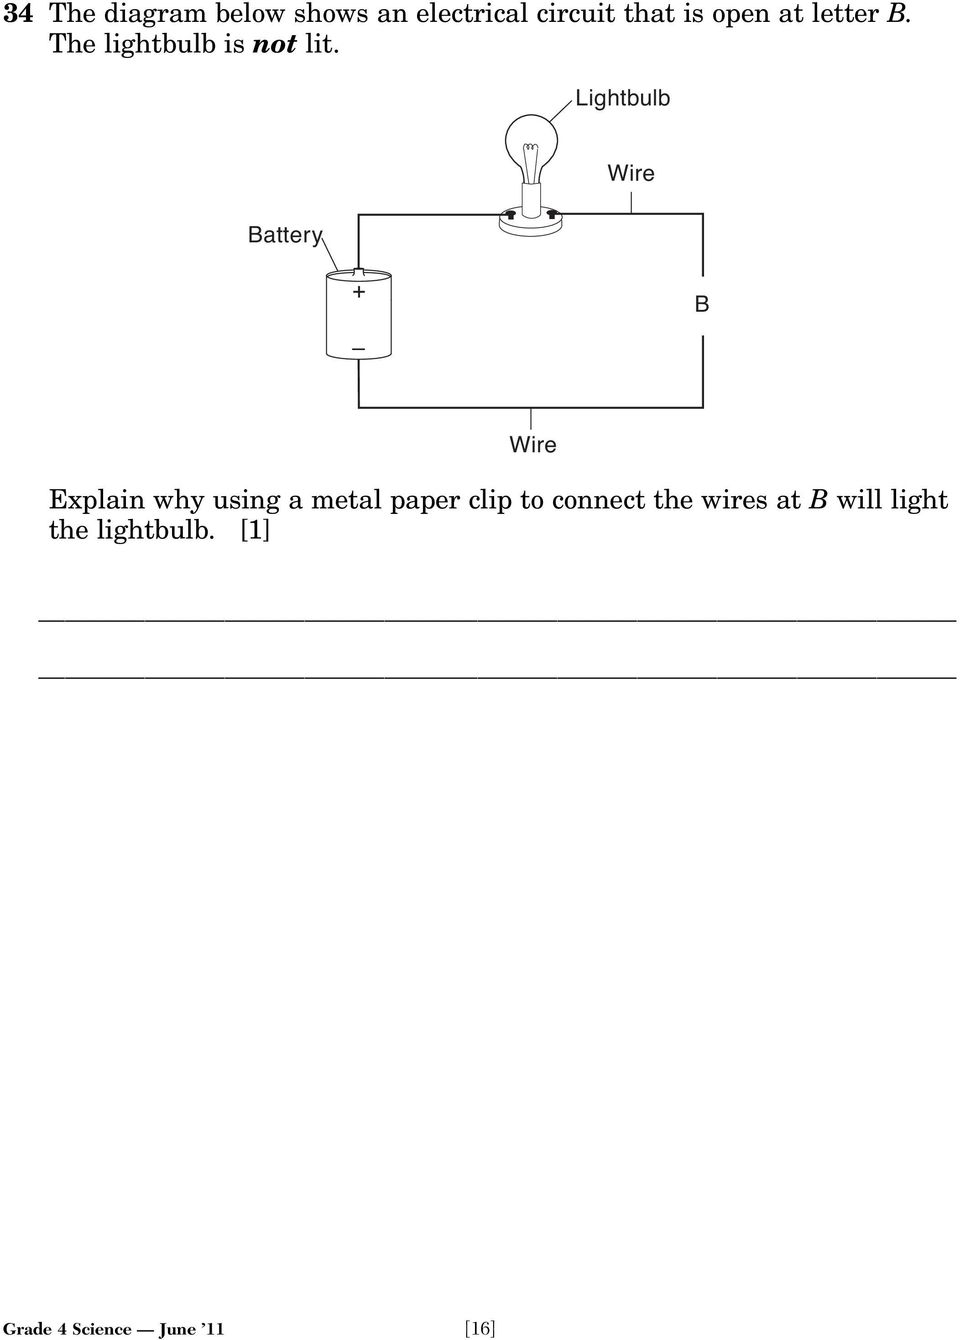 hight resolution of lightbulb battery wire b wire explain why using a metal paper